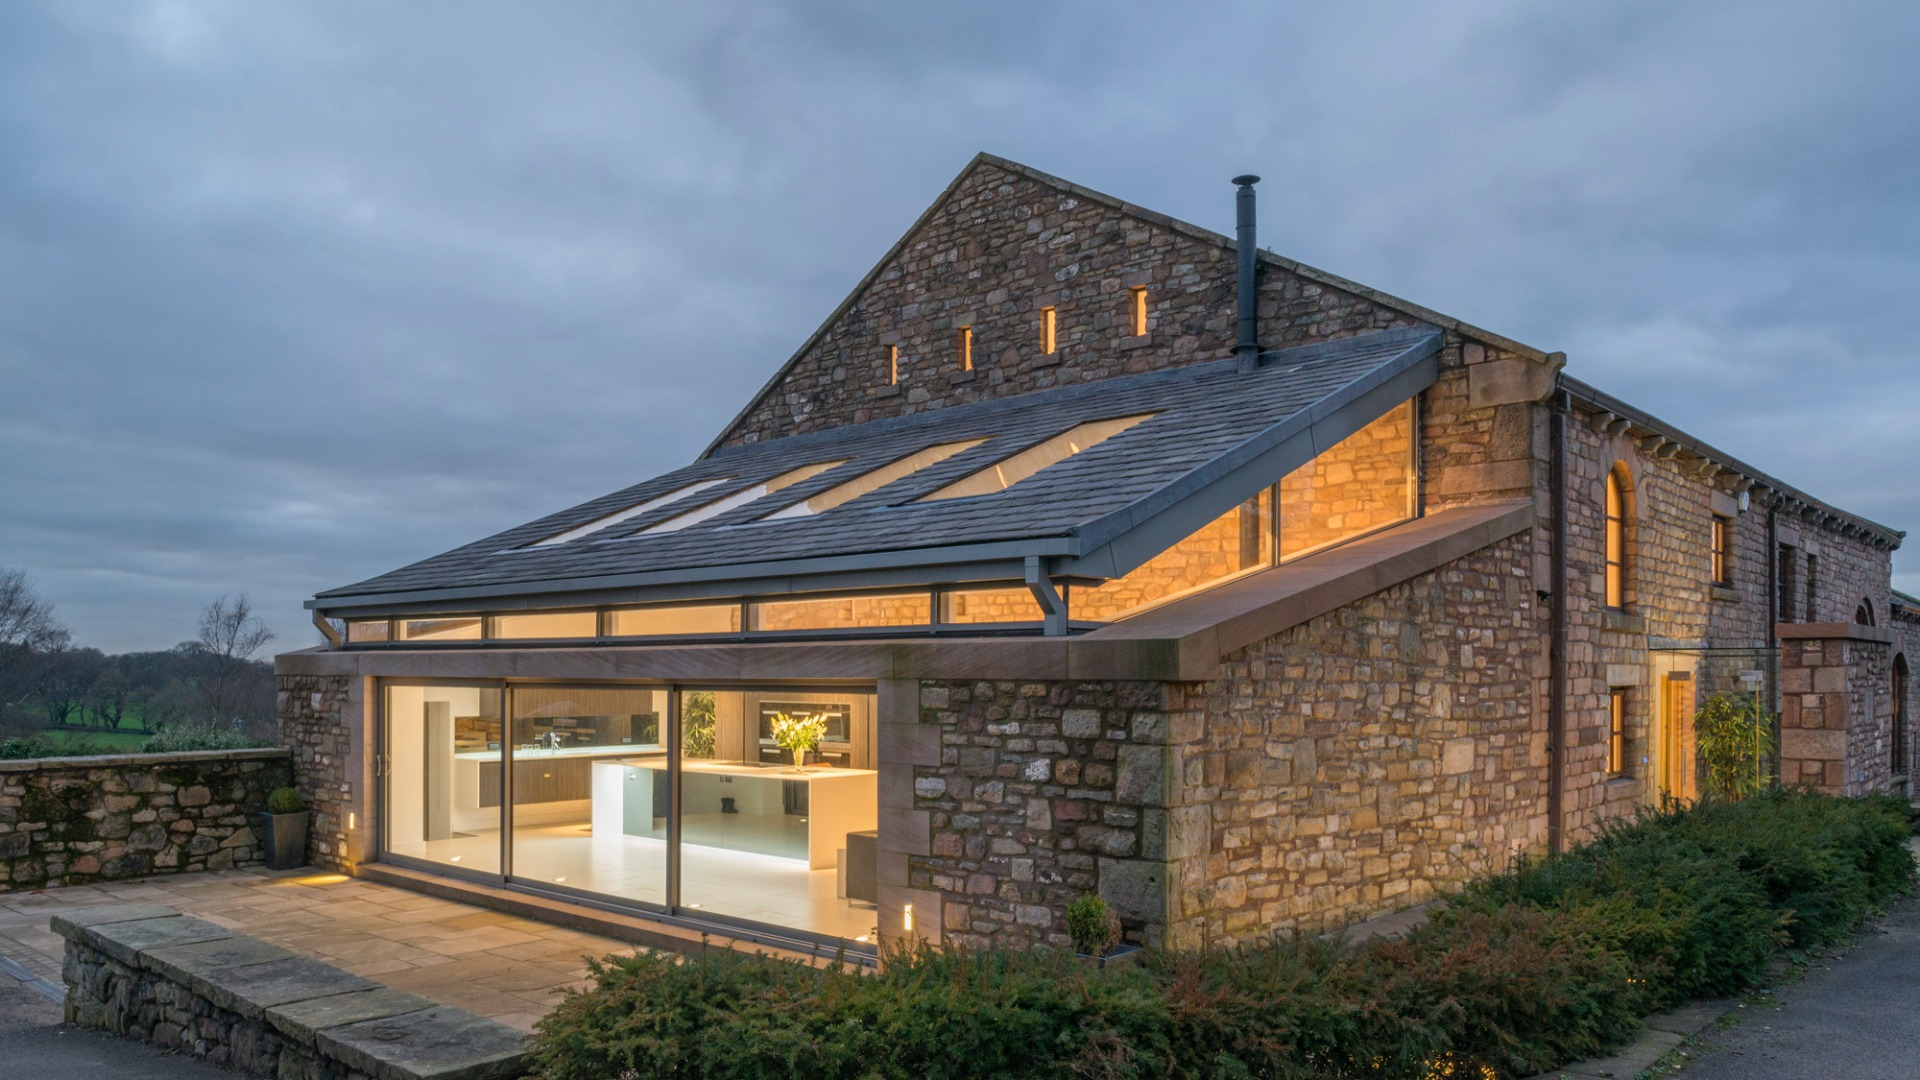 Barn conversion in White Coppice, Lancashire by Statnton Andrews Architects